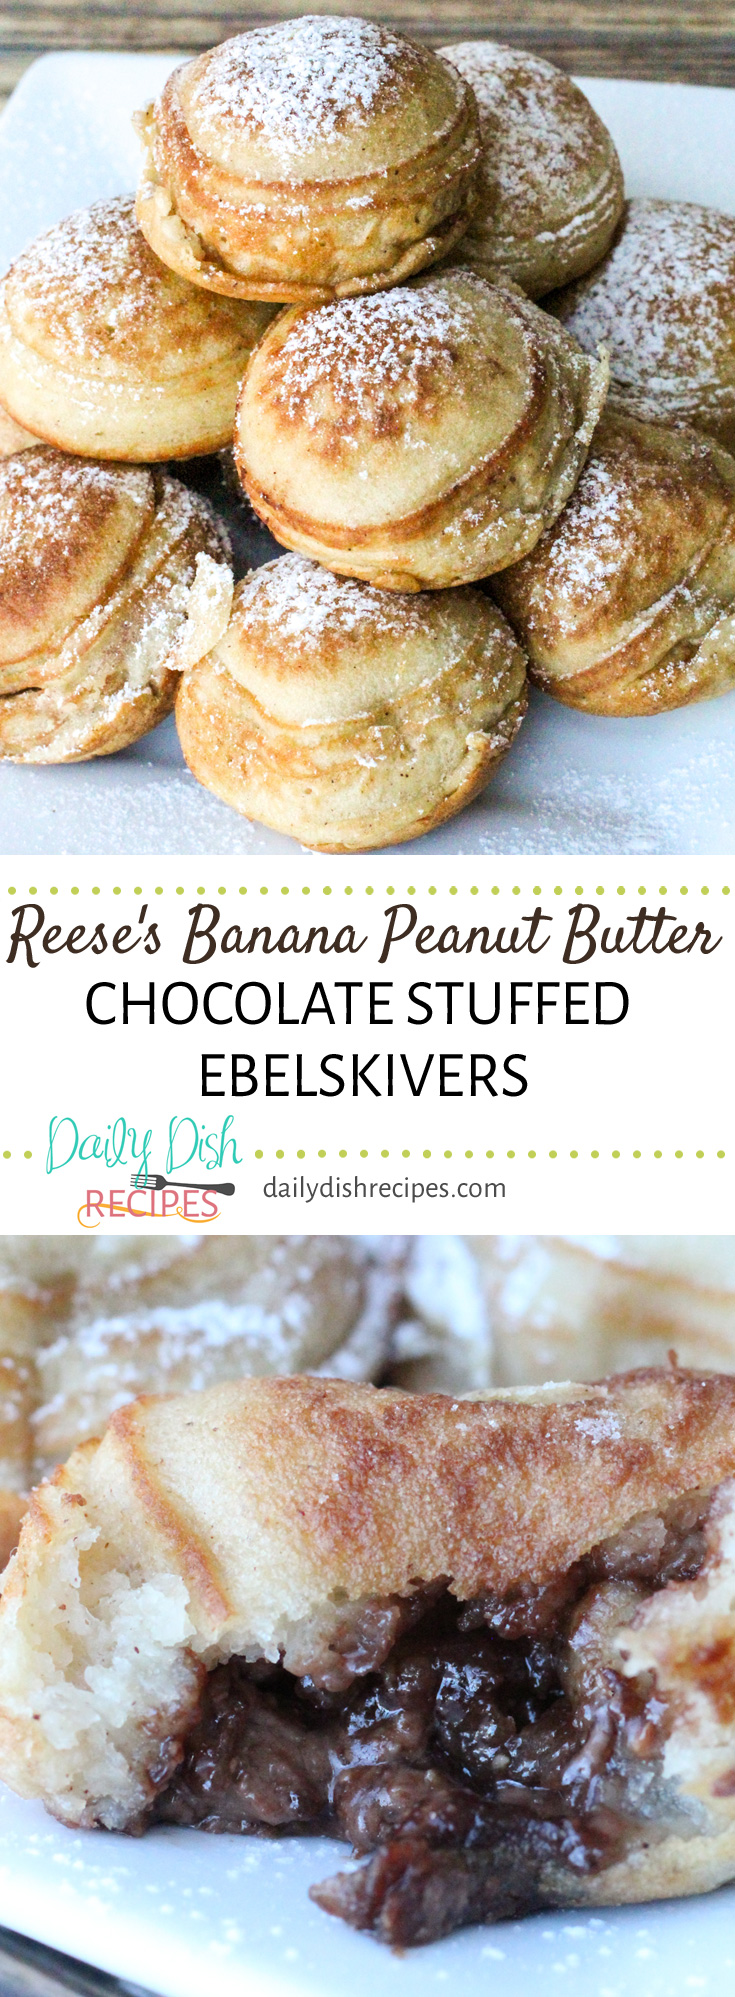 Reese's Banana Peanut Butter Chocolate Stuffed Ebelskivers are little bites of fluffy pancakes. Inside, find melted chocolate, peanut butter and chopped bananas. So much delicious flavor, no need for syrup unless you just want a little more.